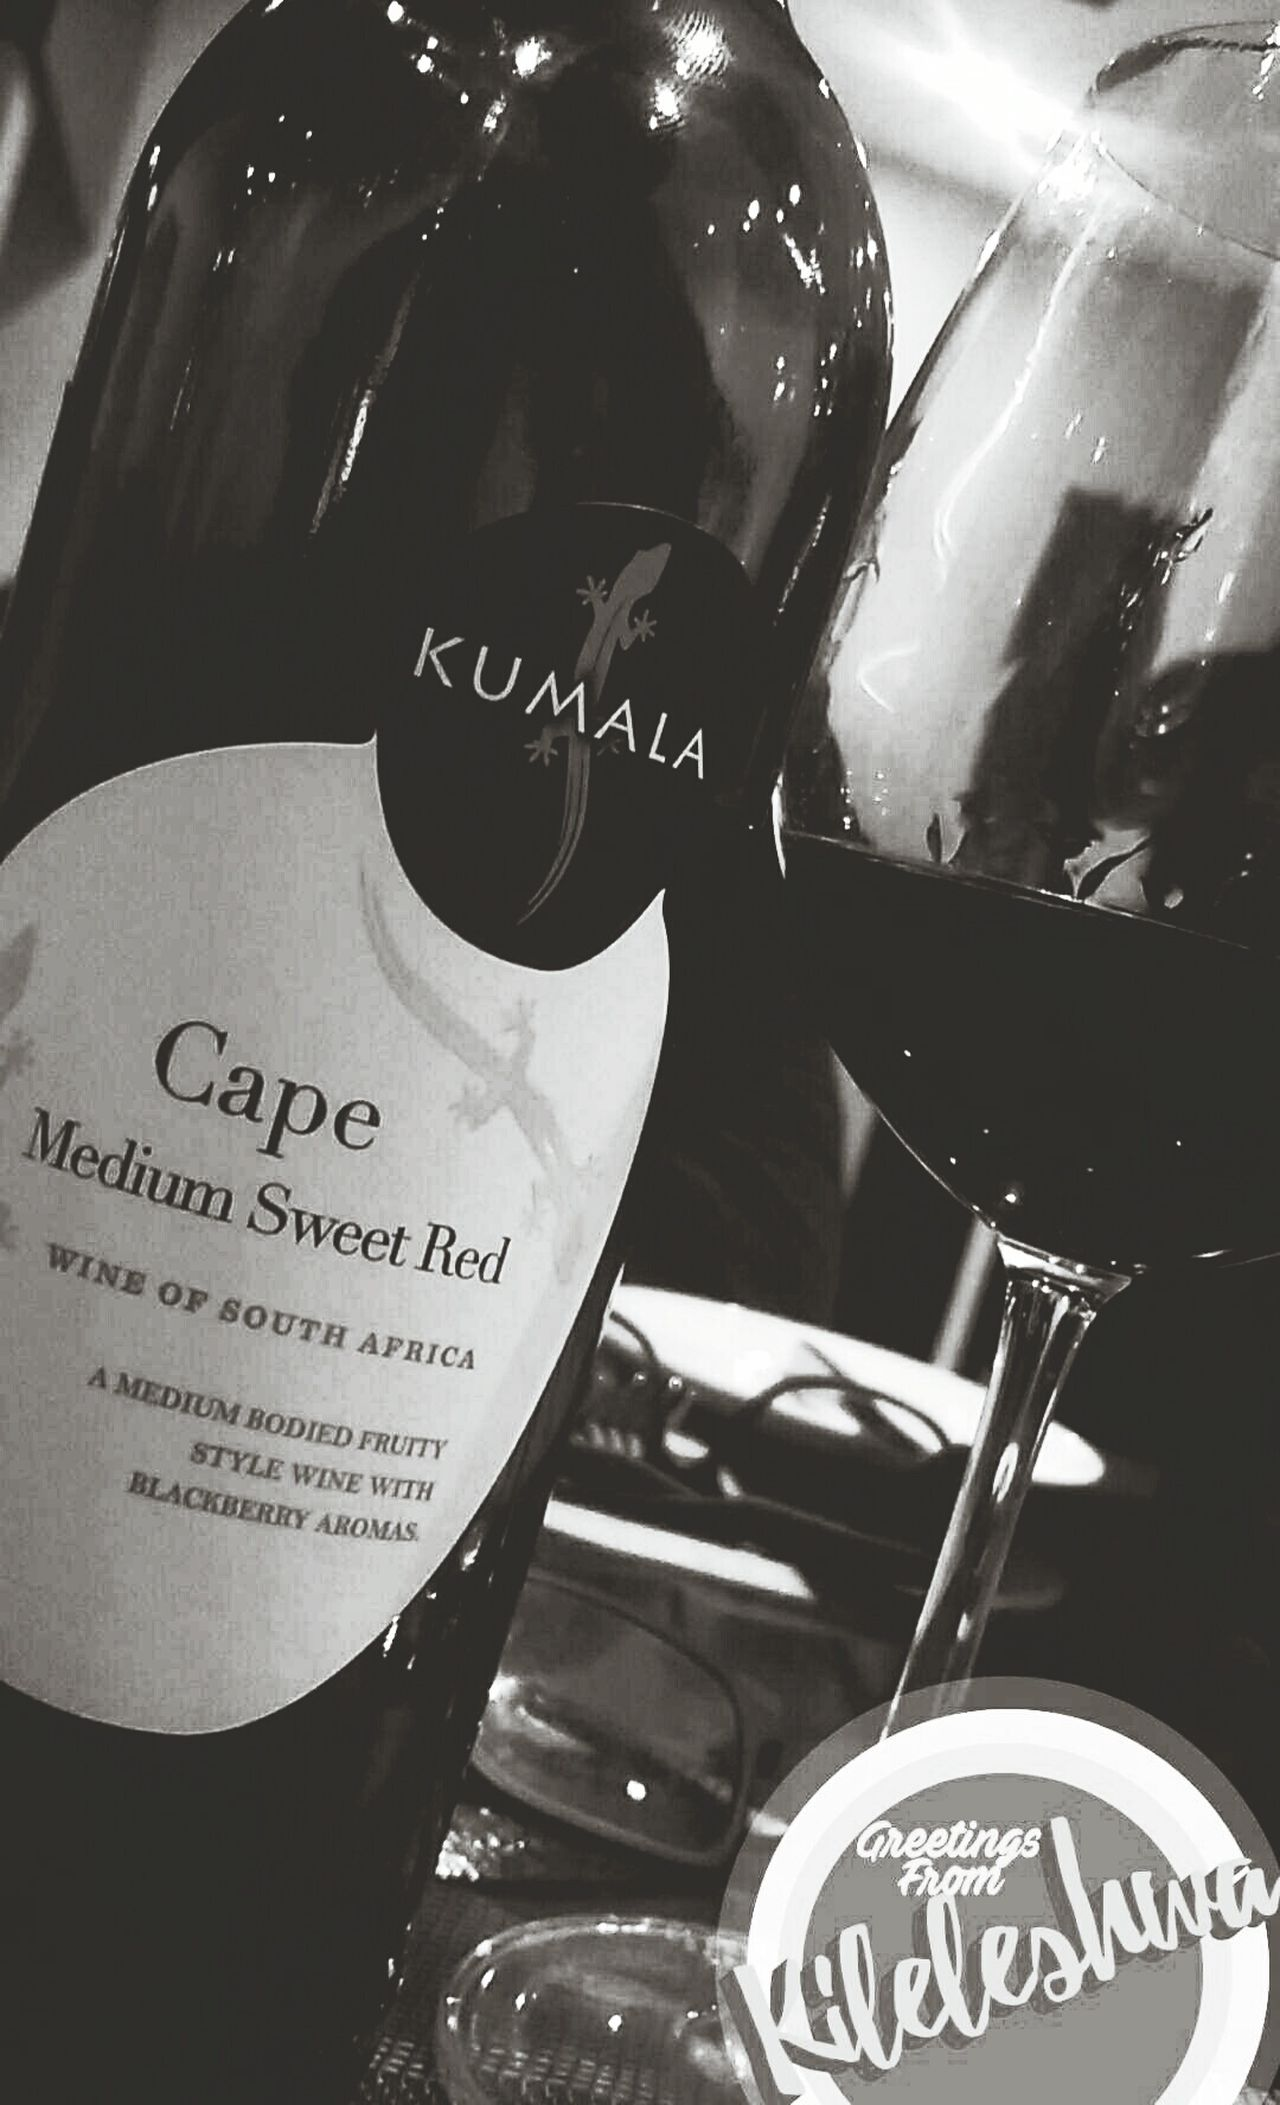 Kumala Cape  Wine ...yes i love Wine Moments